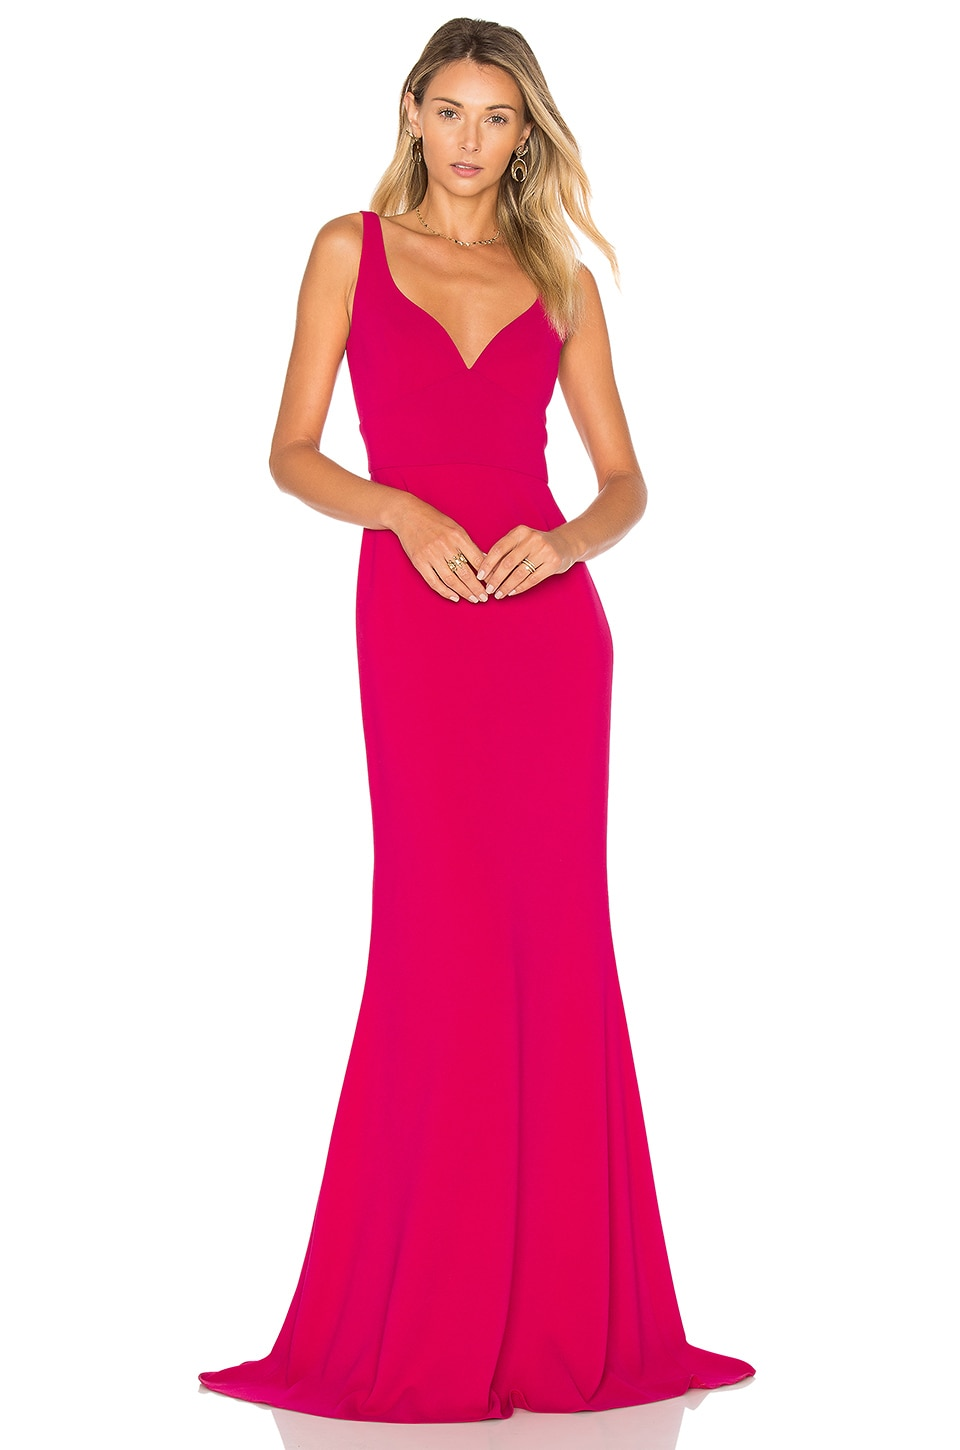 JILL JILL STUART Sleeveless Gown in Wild Rose